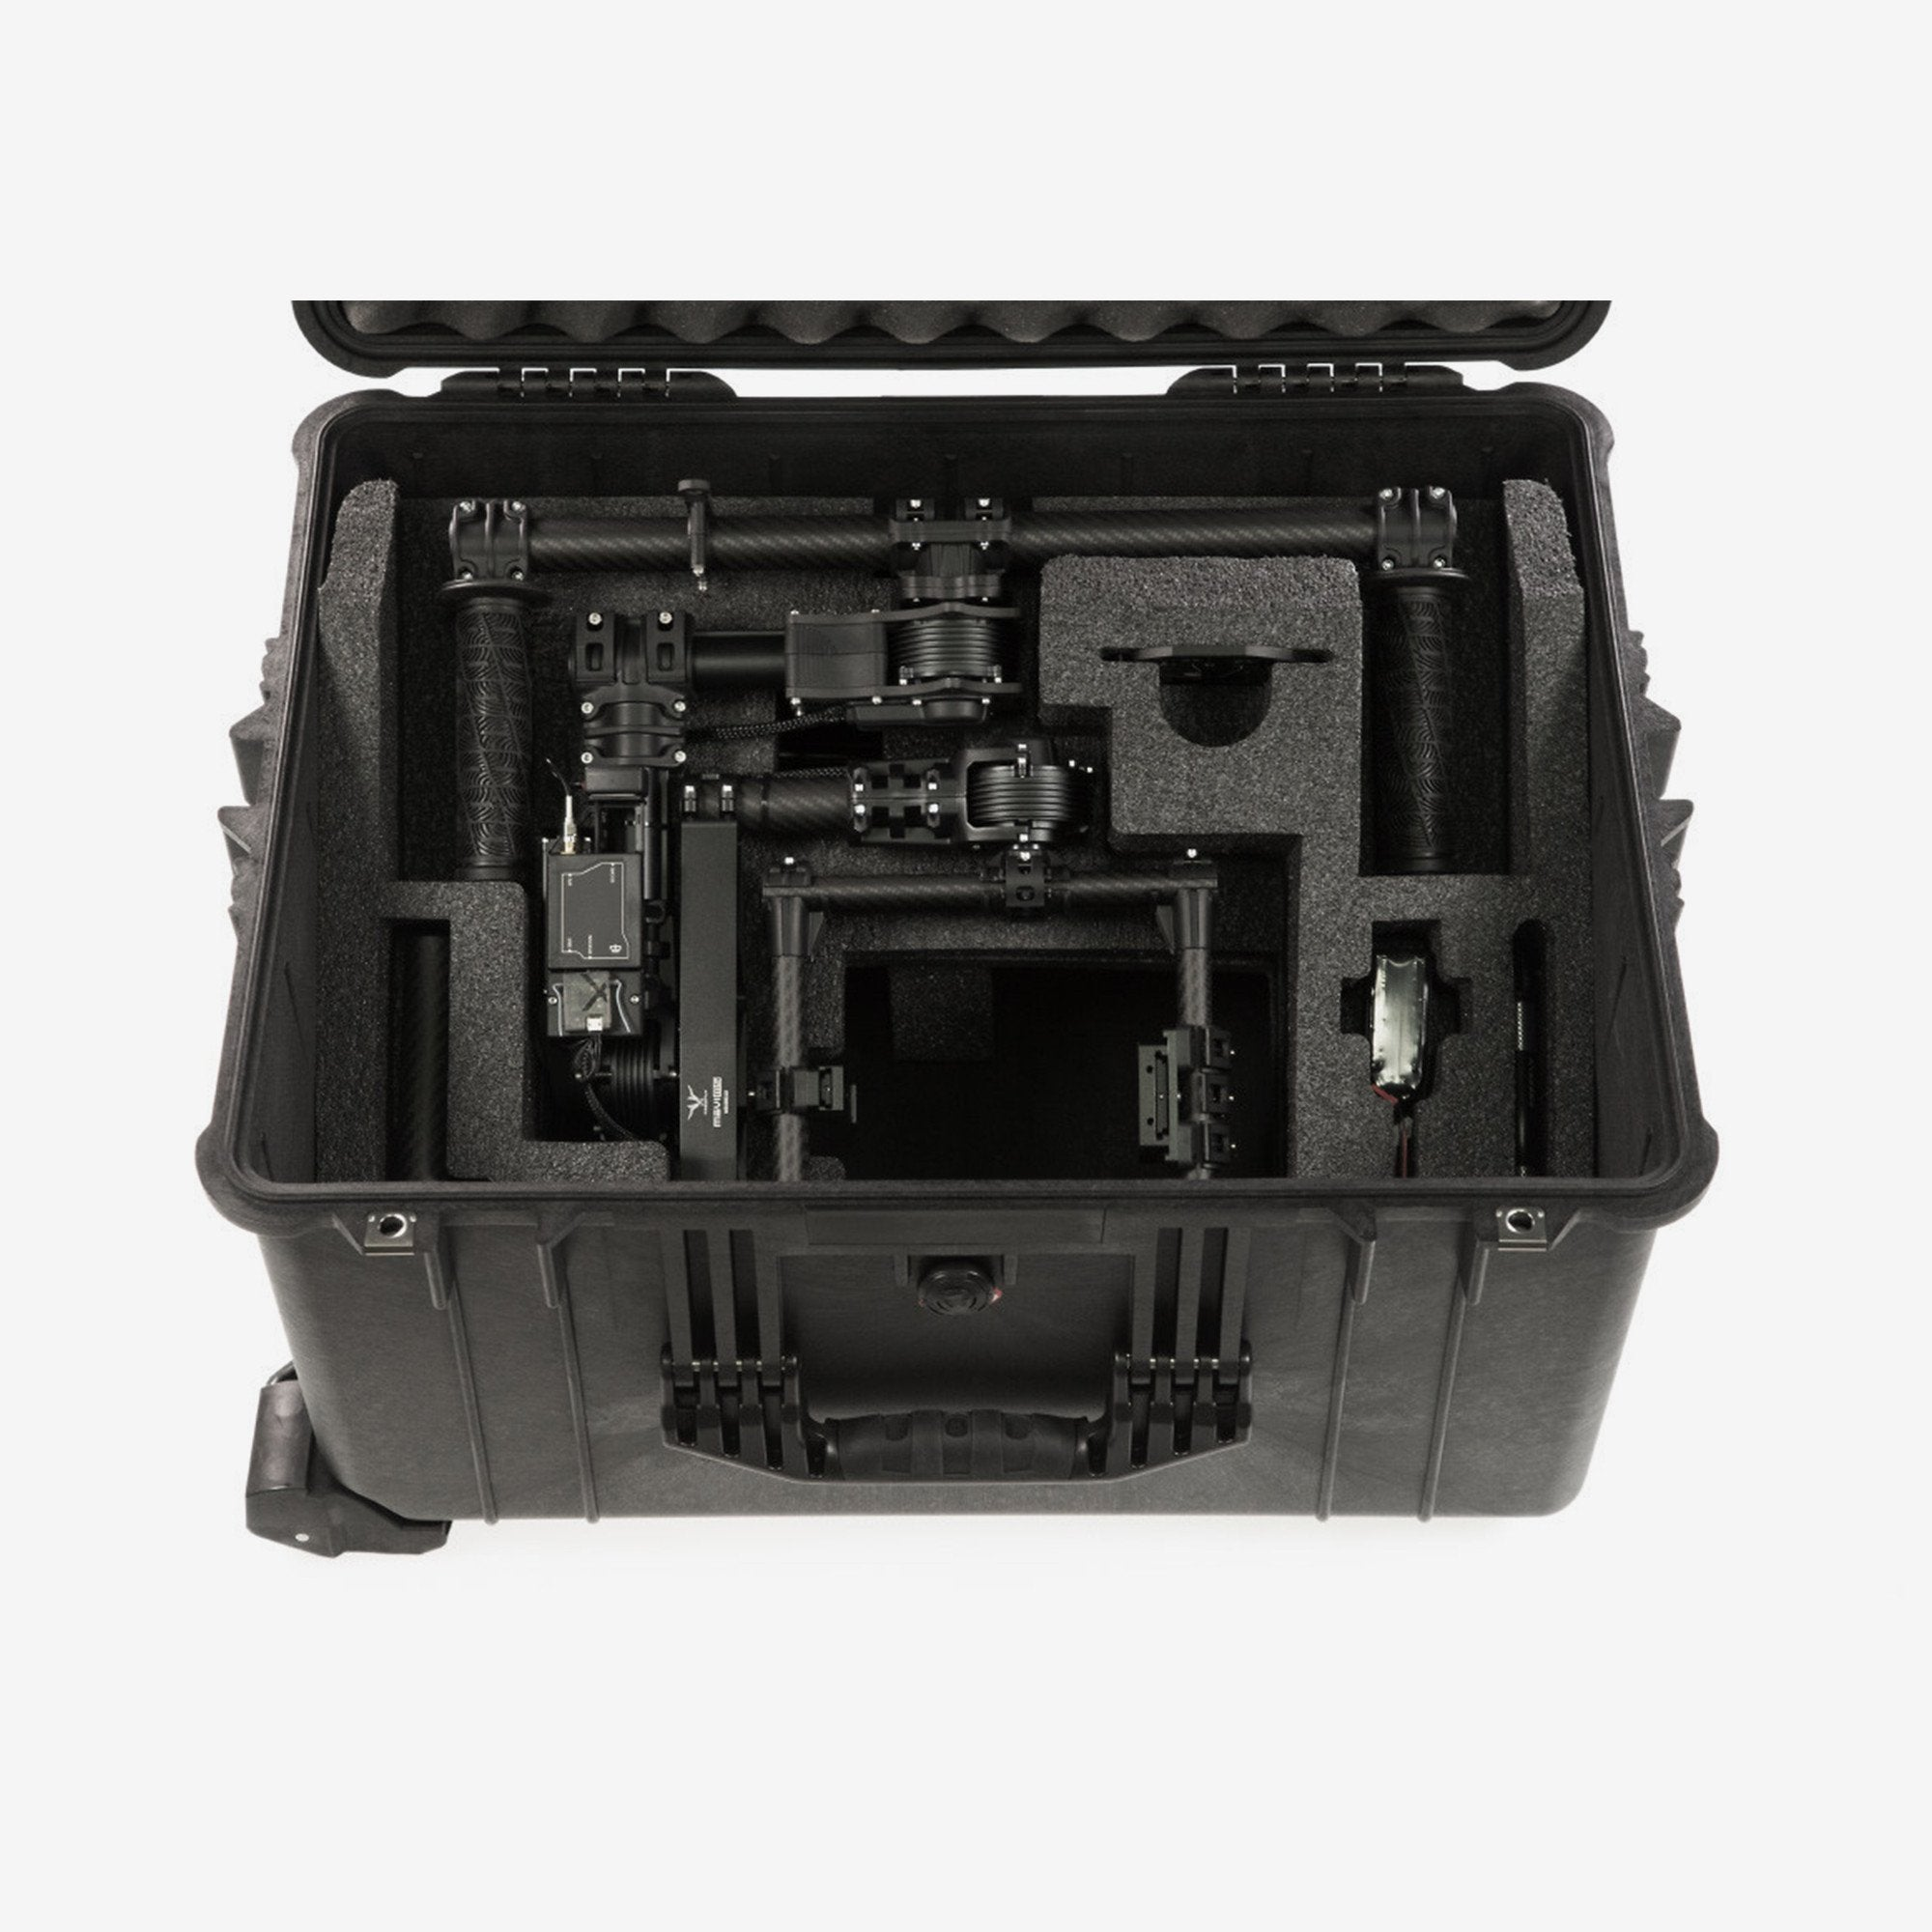 FIELD TESTED - Freefly MōVI M5 with Travel Case - 30% off